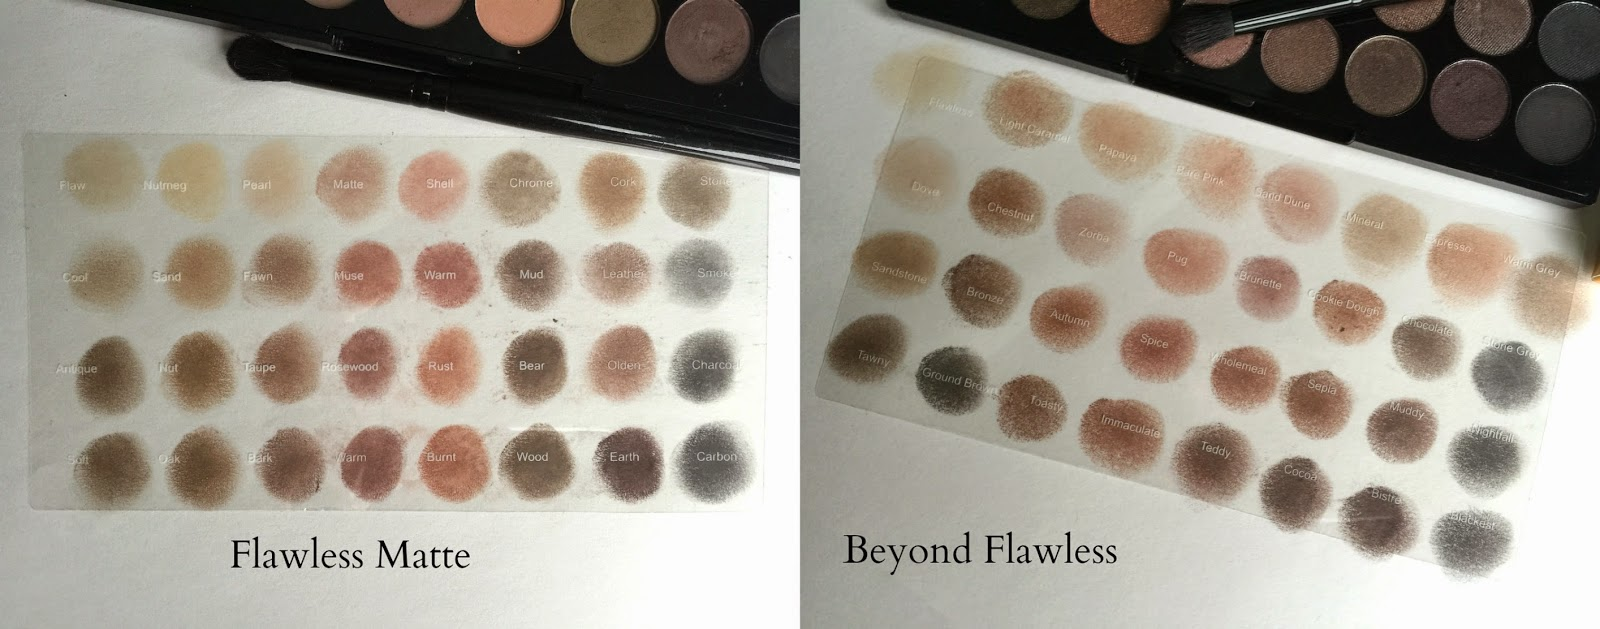 Makeup Revolution Eyeshadow Swatches